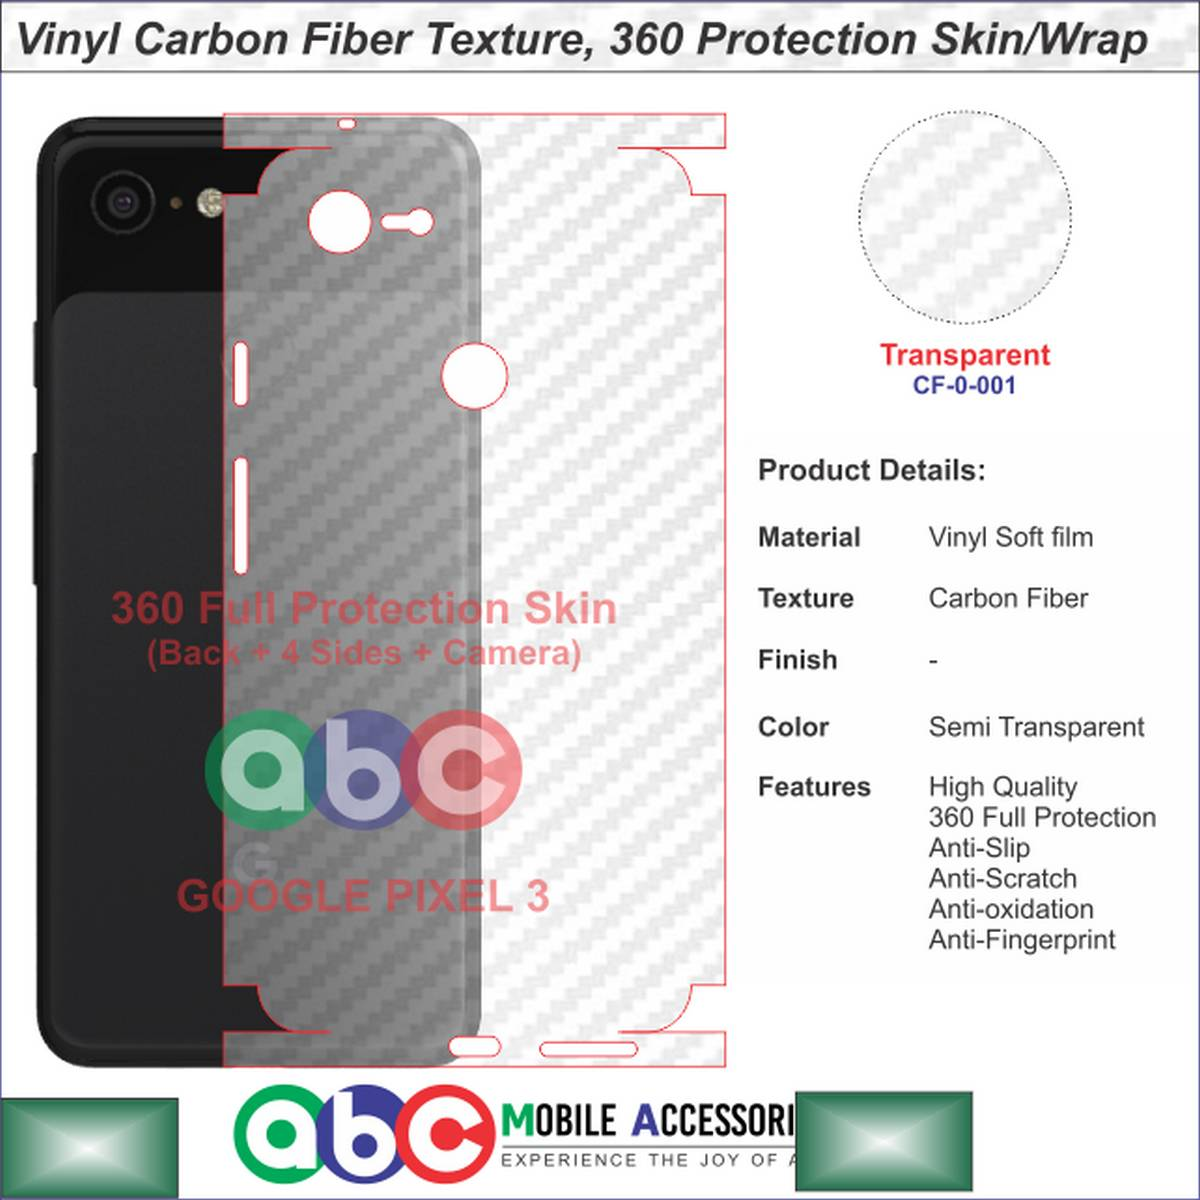 Google Pixel 3 , 360 Full Protection Vinyl Skin/Wrap in Plain , Carbon Fiber and Leather Textures for Pixel3